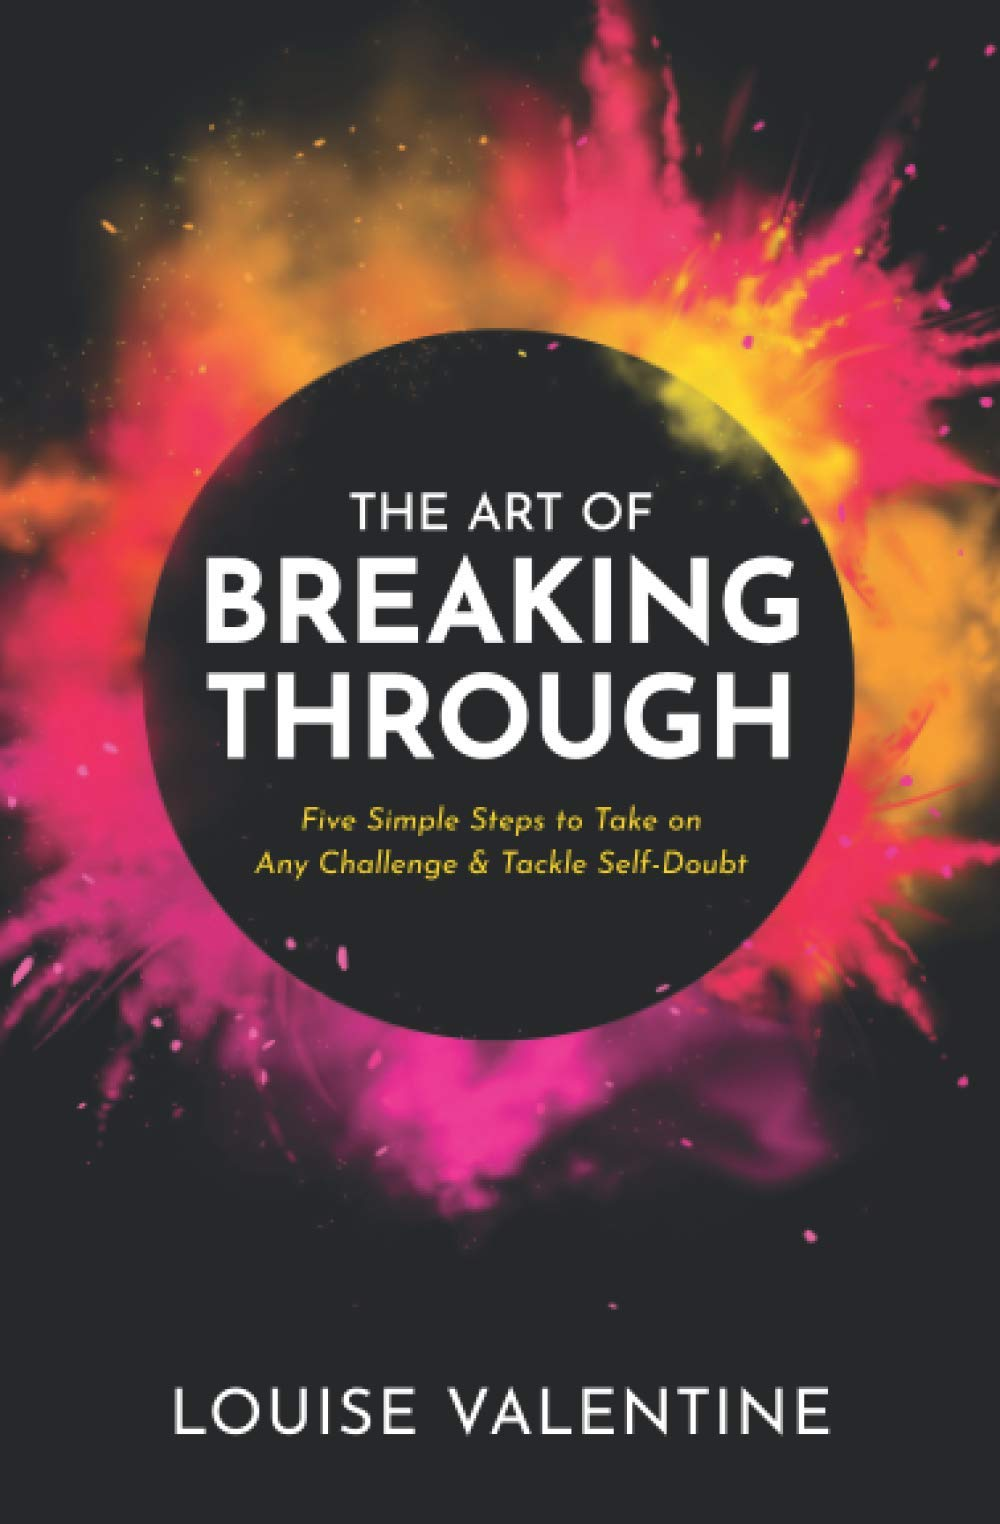 The Art of Breaking Through: Five Simple Steps to Take on Any Challenge & Tackle Self-Doubt